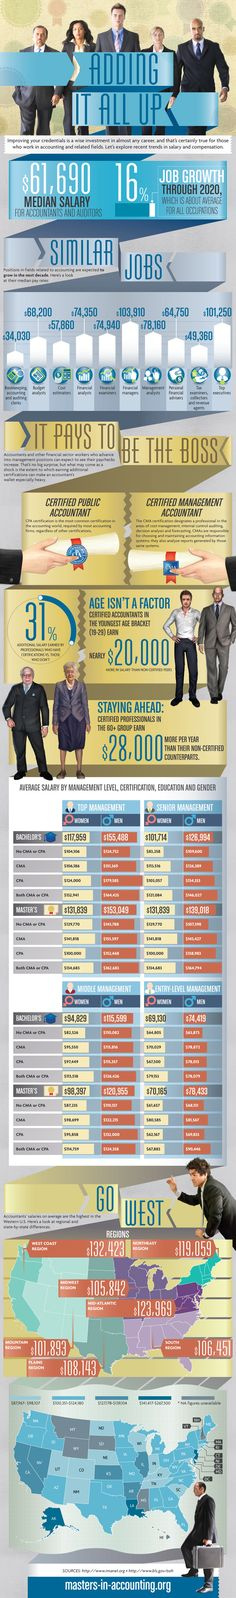 Accountant Salary USA : Entering the accountant profession? Big concern about how much an investment in mastering and certifying accounting knowledge could yield in real money? Here is what you need to know about the average accountant payroll by position, certification, education and gender across USA.  > http://infographicsmania.com/accountant-salary-usa/?utm_source=Pinterest&utm_medium=ZAKKAS&utm_campaign=SNAP